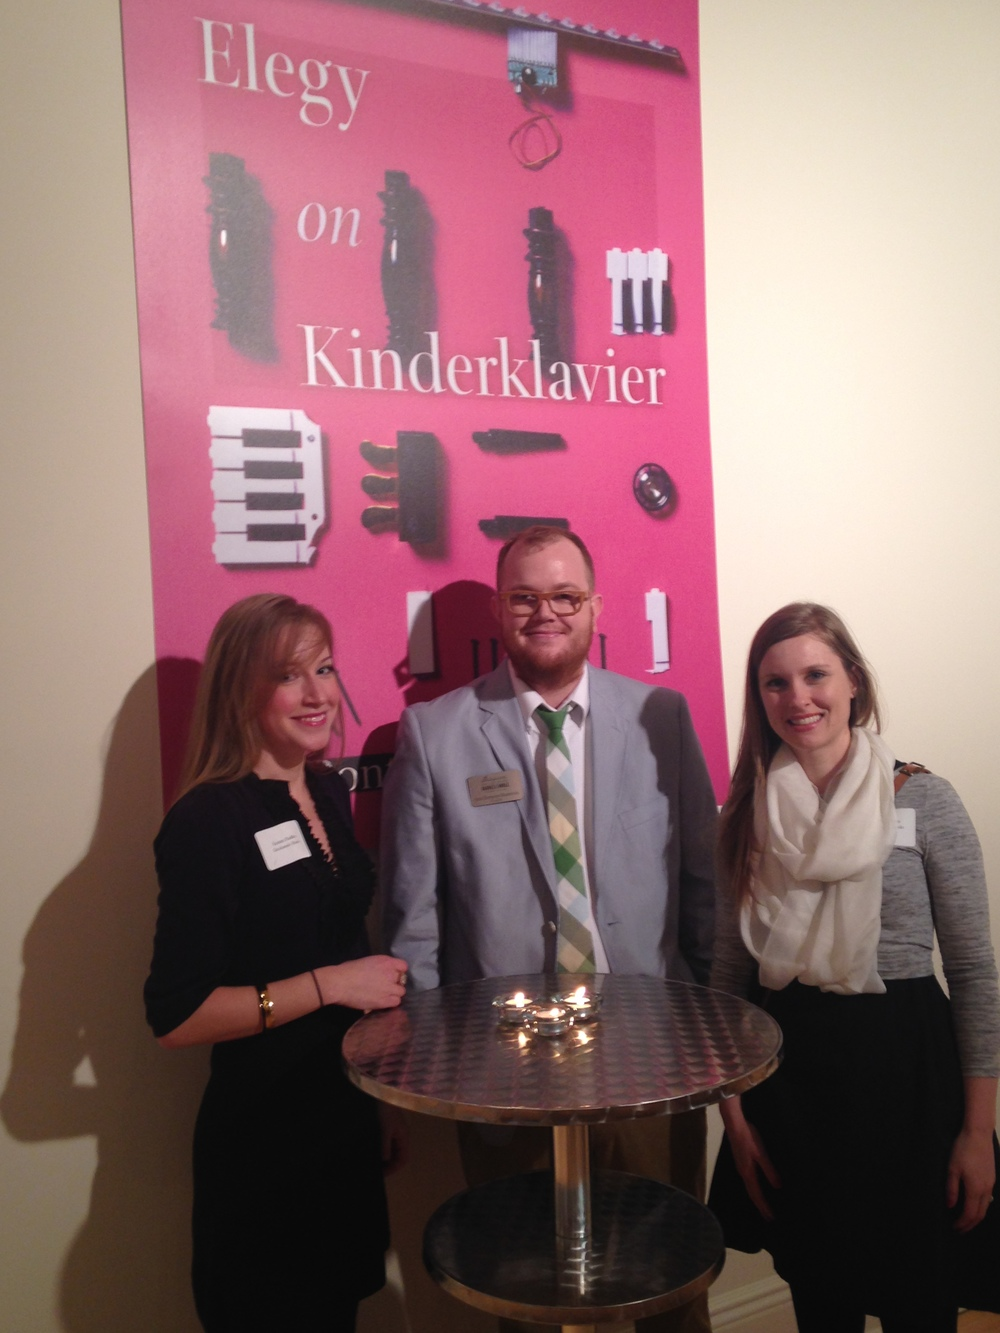 Arna Bontemps Hemenway with Marketing Director Kristen Radtke and Outreach Director Kristen Miller